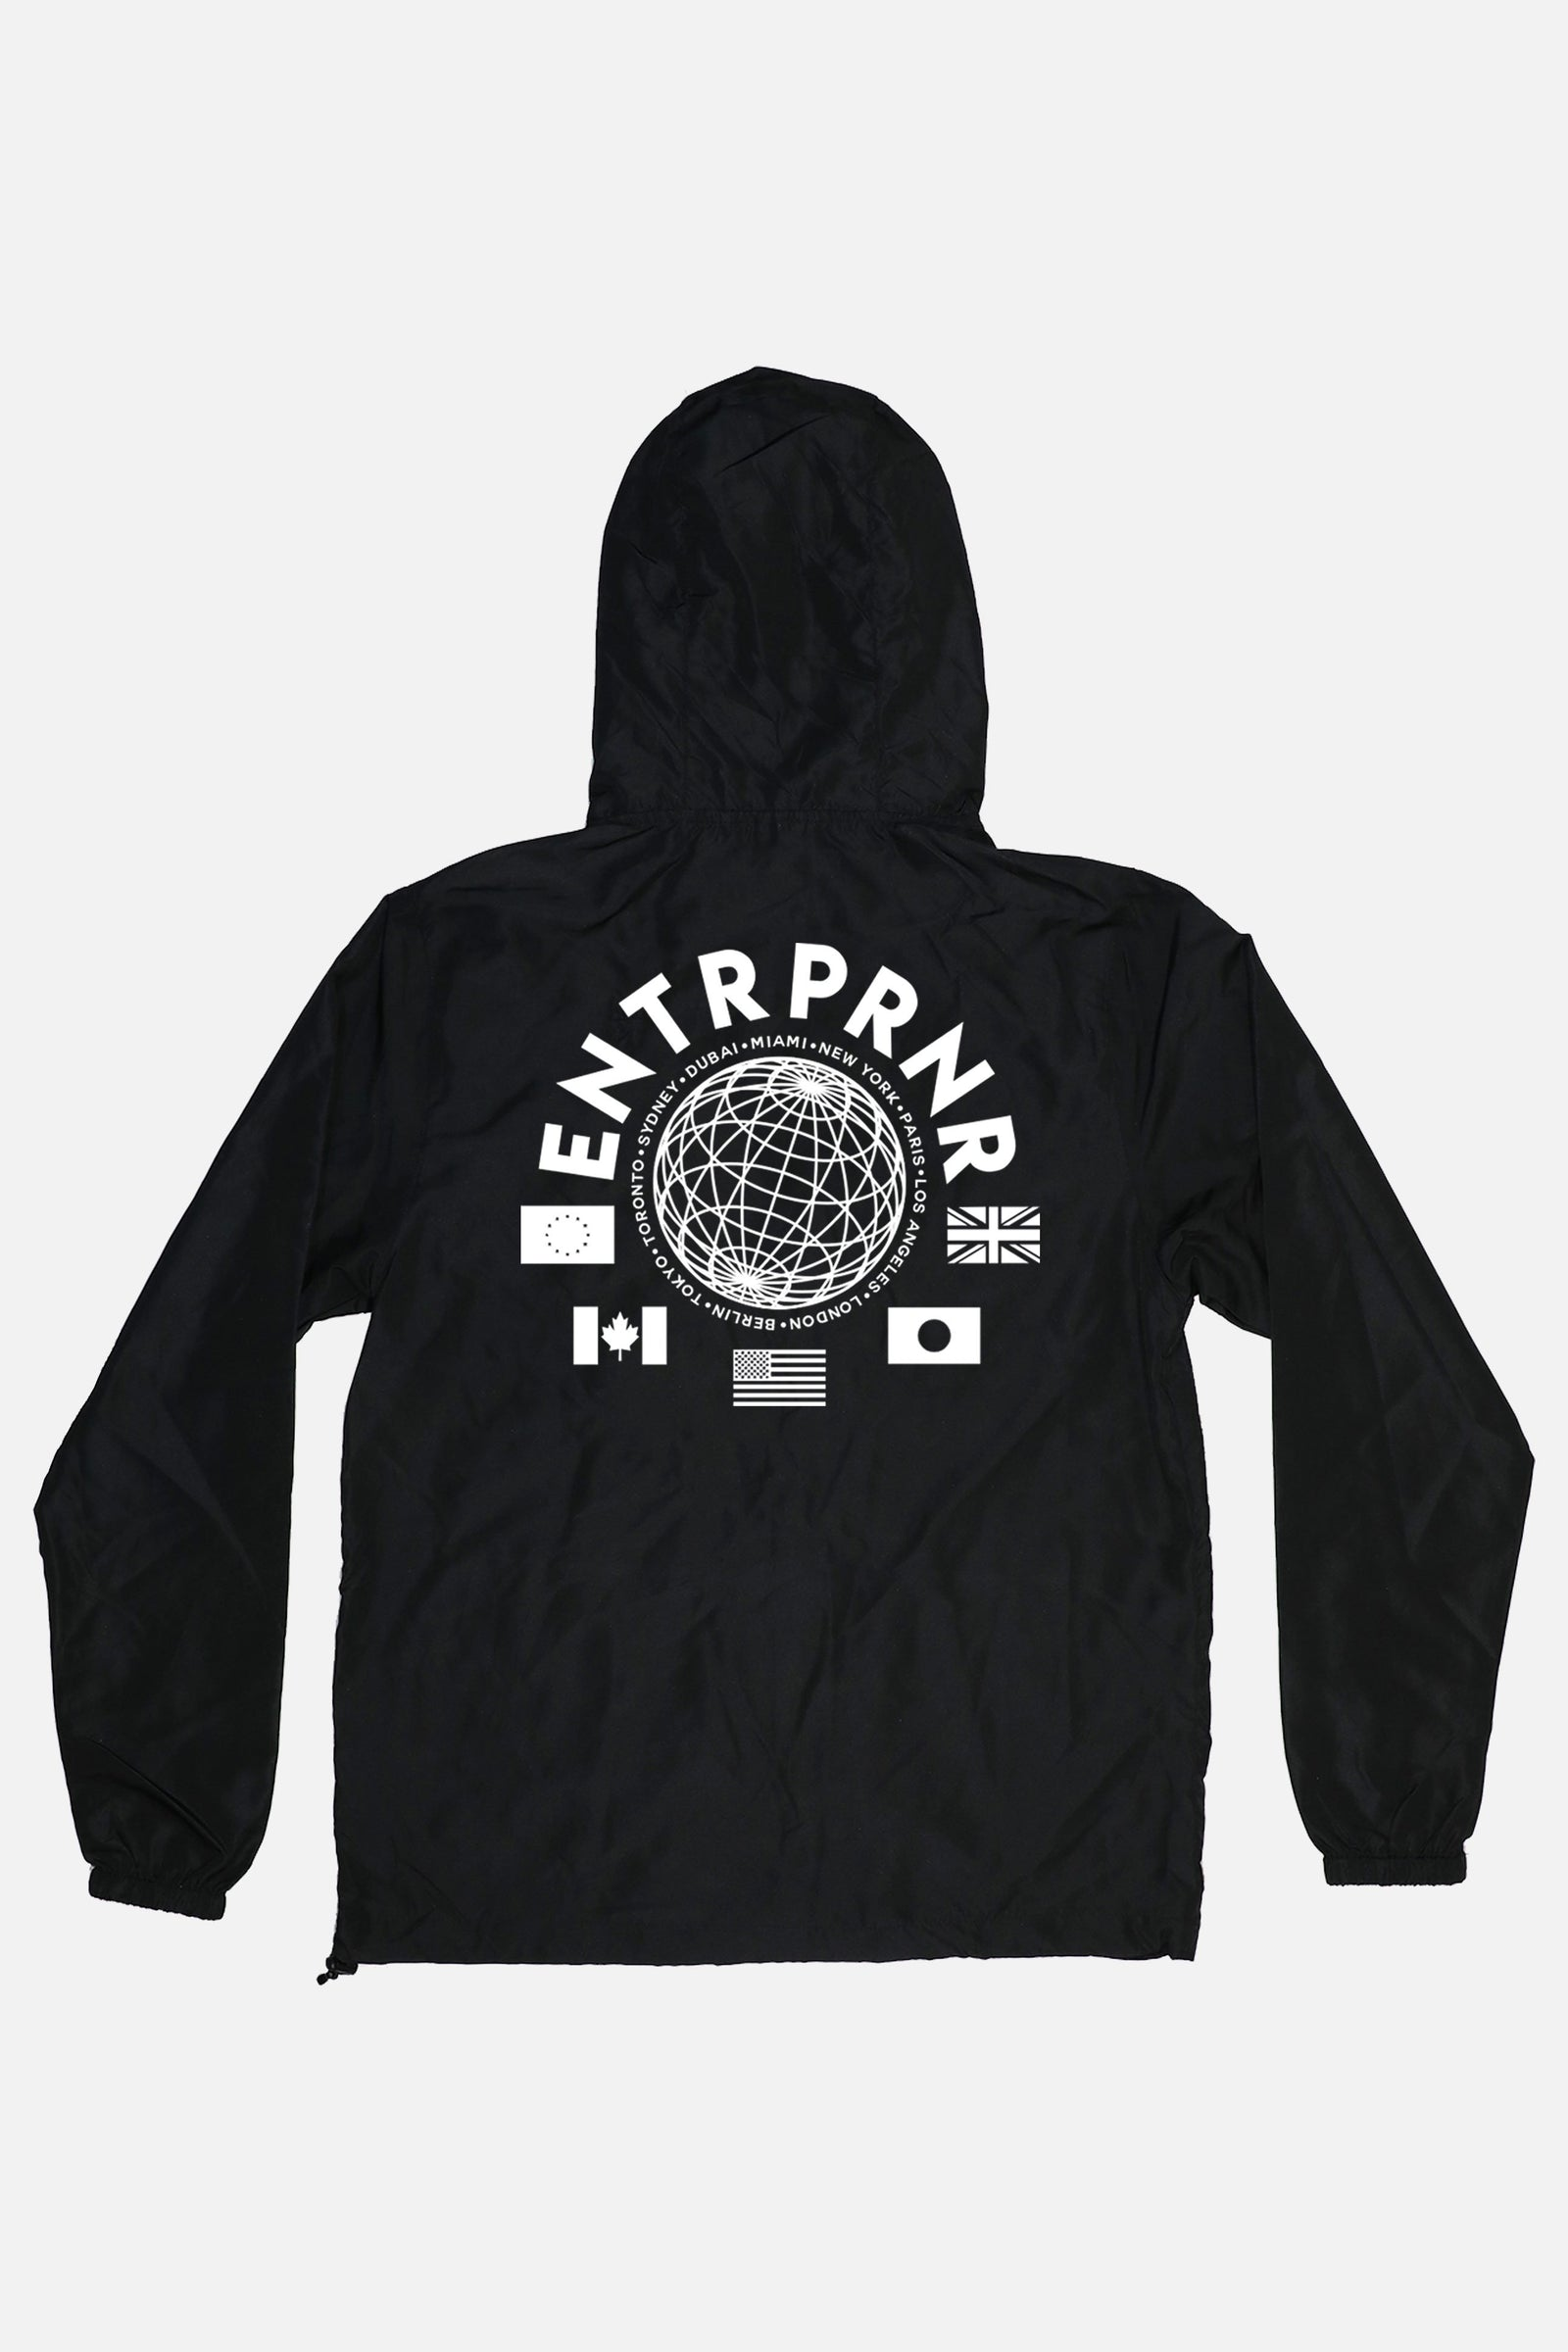 ENTRPRNR Worldwide Windbreaker - Black - ENTRPRNR® | The Entrepreneur's Clothing Brand. | Stagnancy is the Enemy. Action is King.